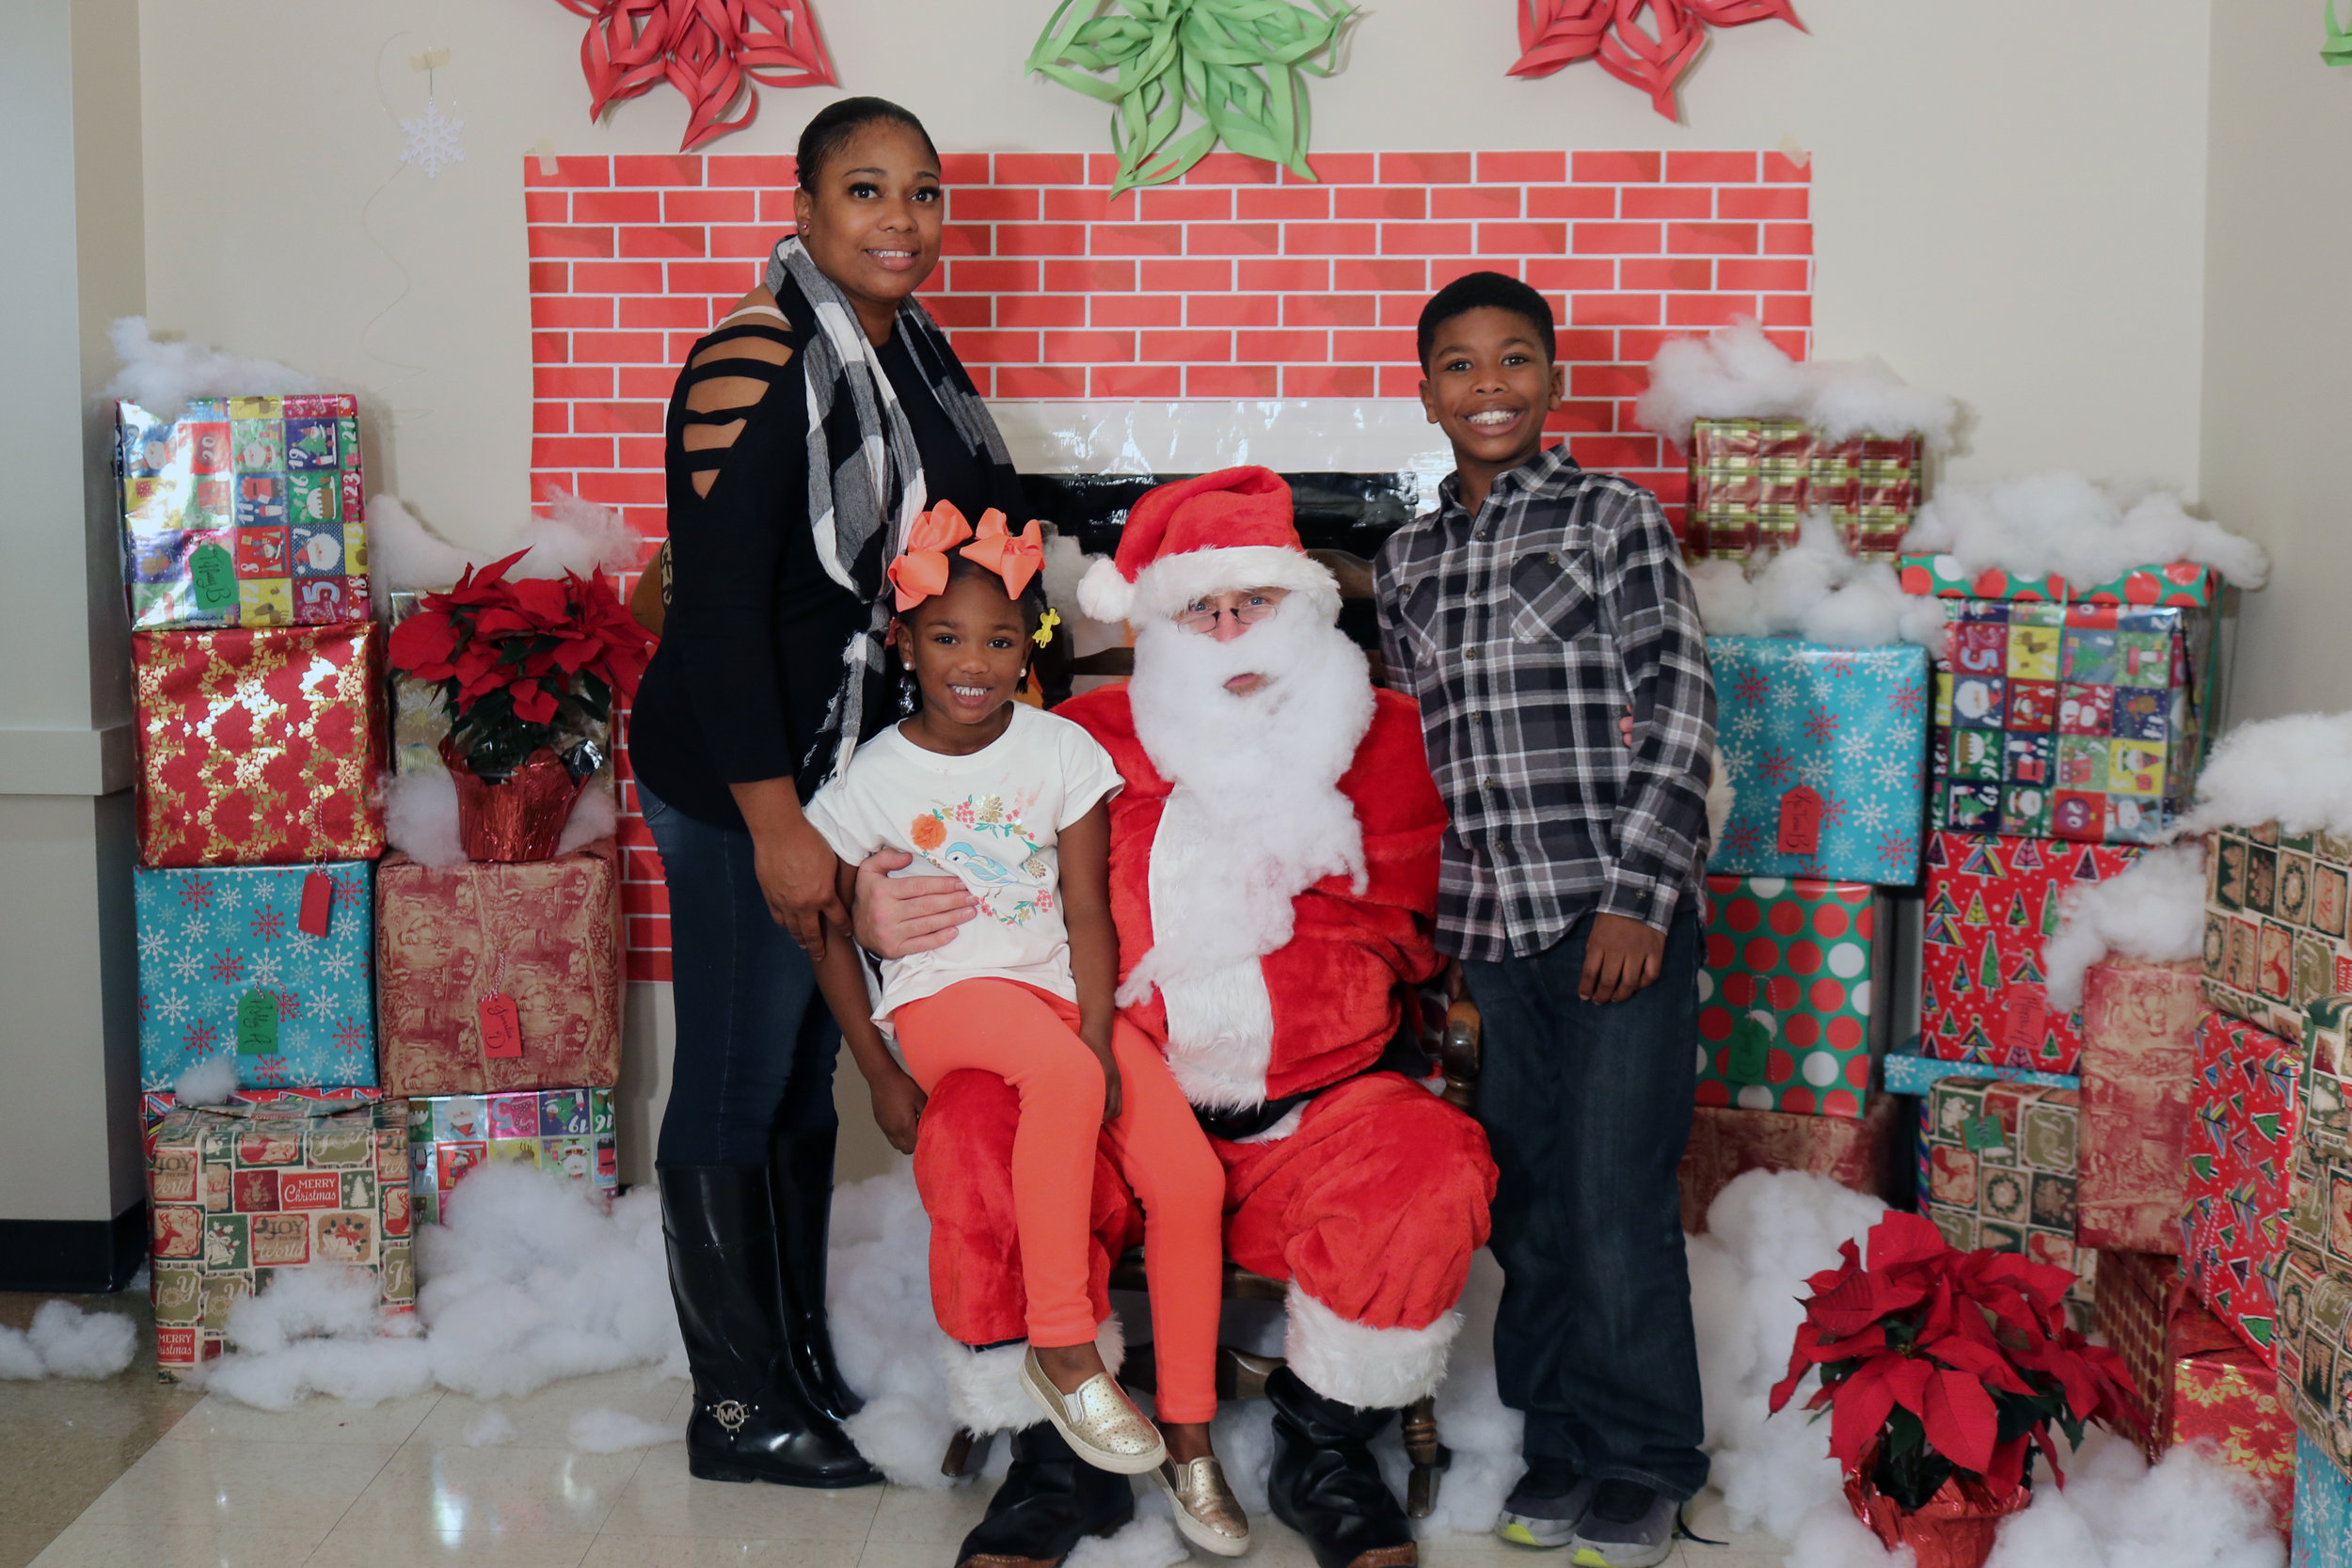 Fortress mom Tasheka and her children Jaidah and Jordan pose with Santa at our Family Christmas Party.